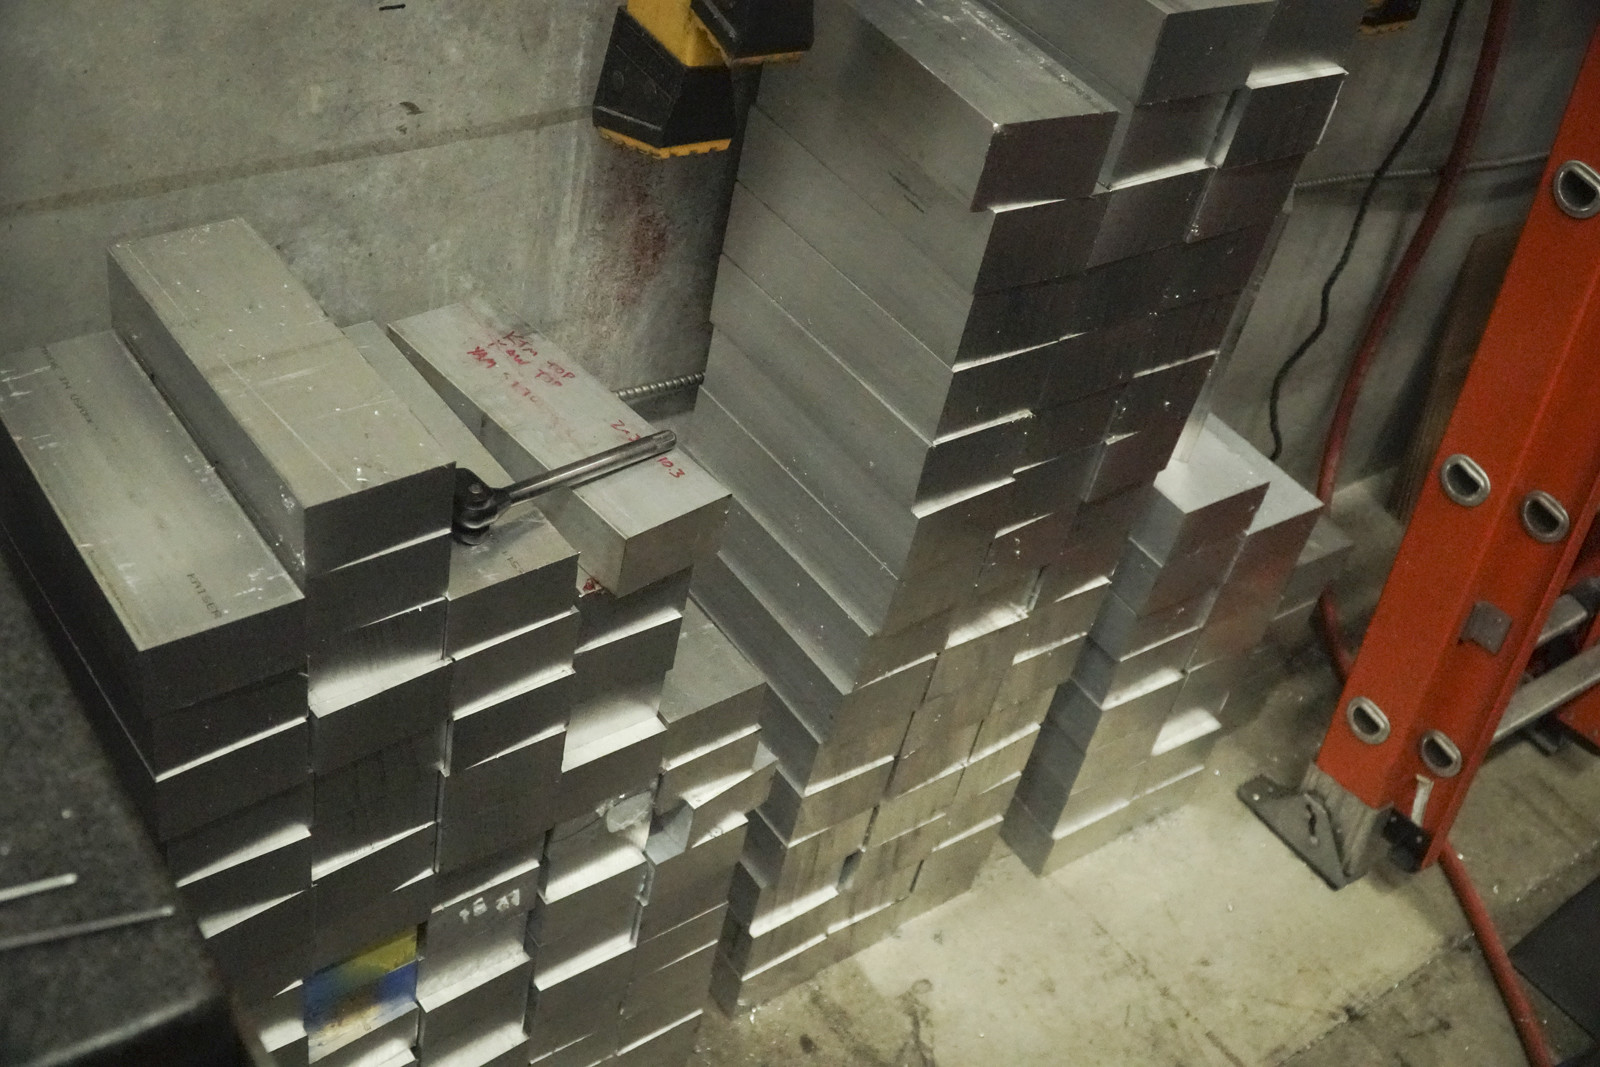 All the clamps star off as these big hunks of aluminum.